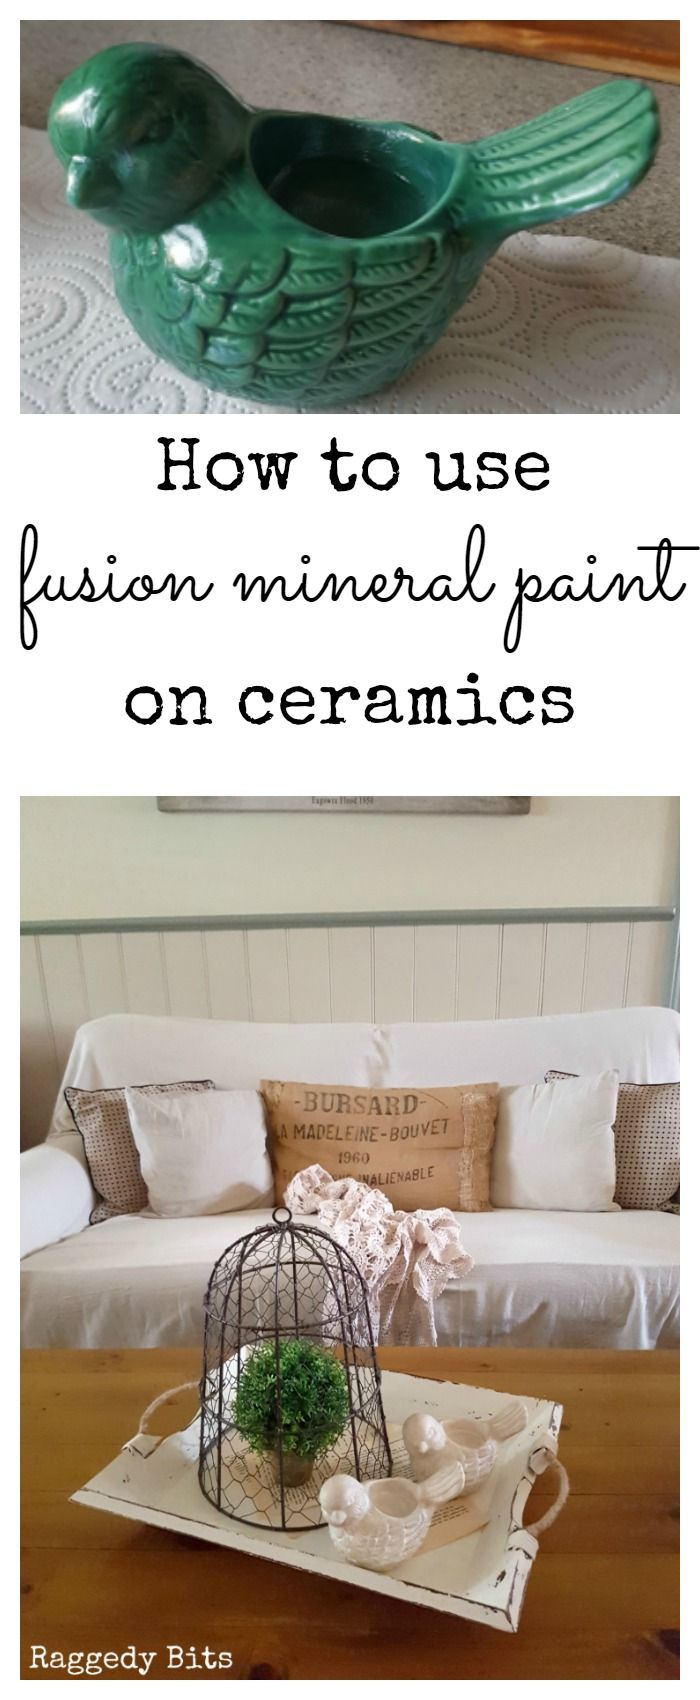 Ever wondered how to use Fusion Mineral Paint on ceramics? Sharing a fun tutorial on how to and add some farmhouse charm to dated pieces | www.raggedy-bits.com